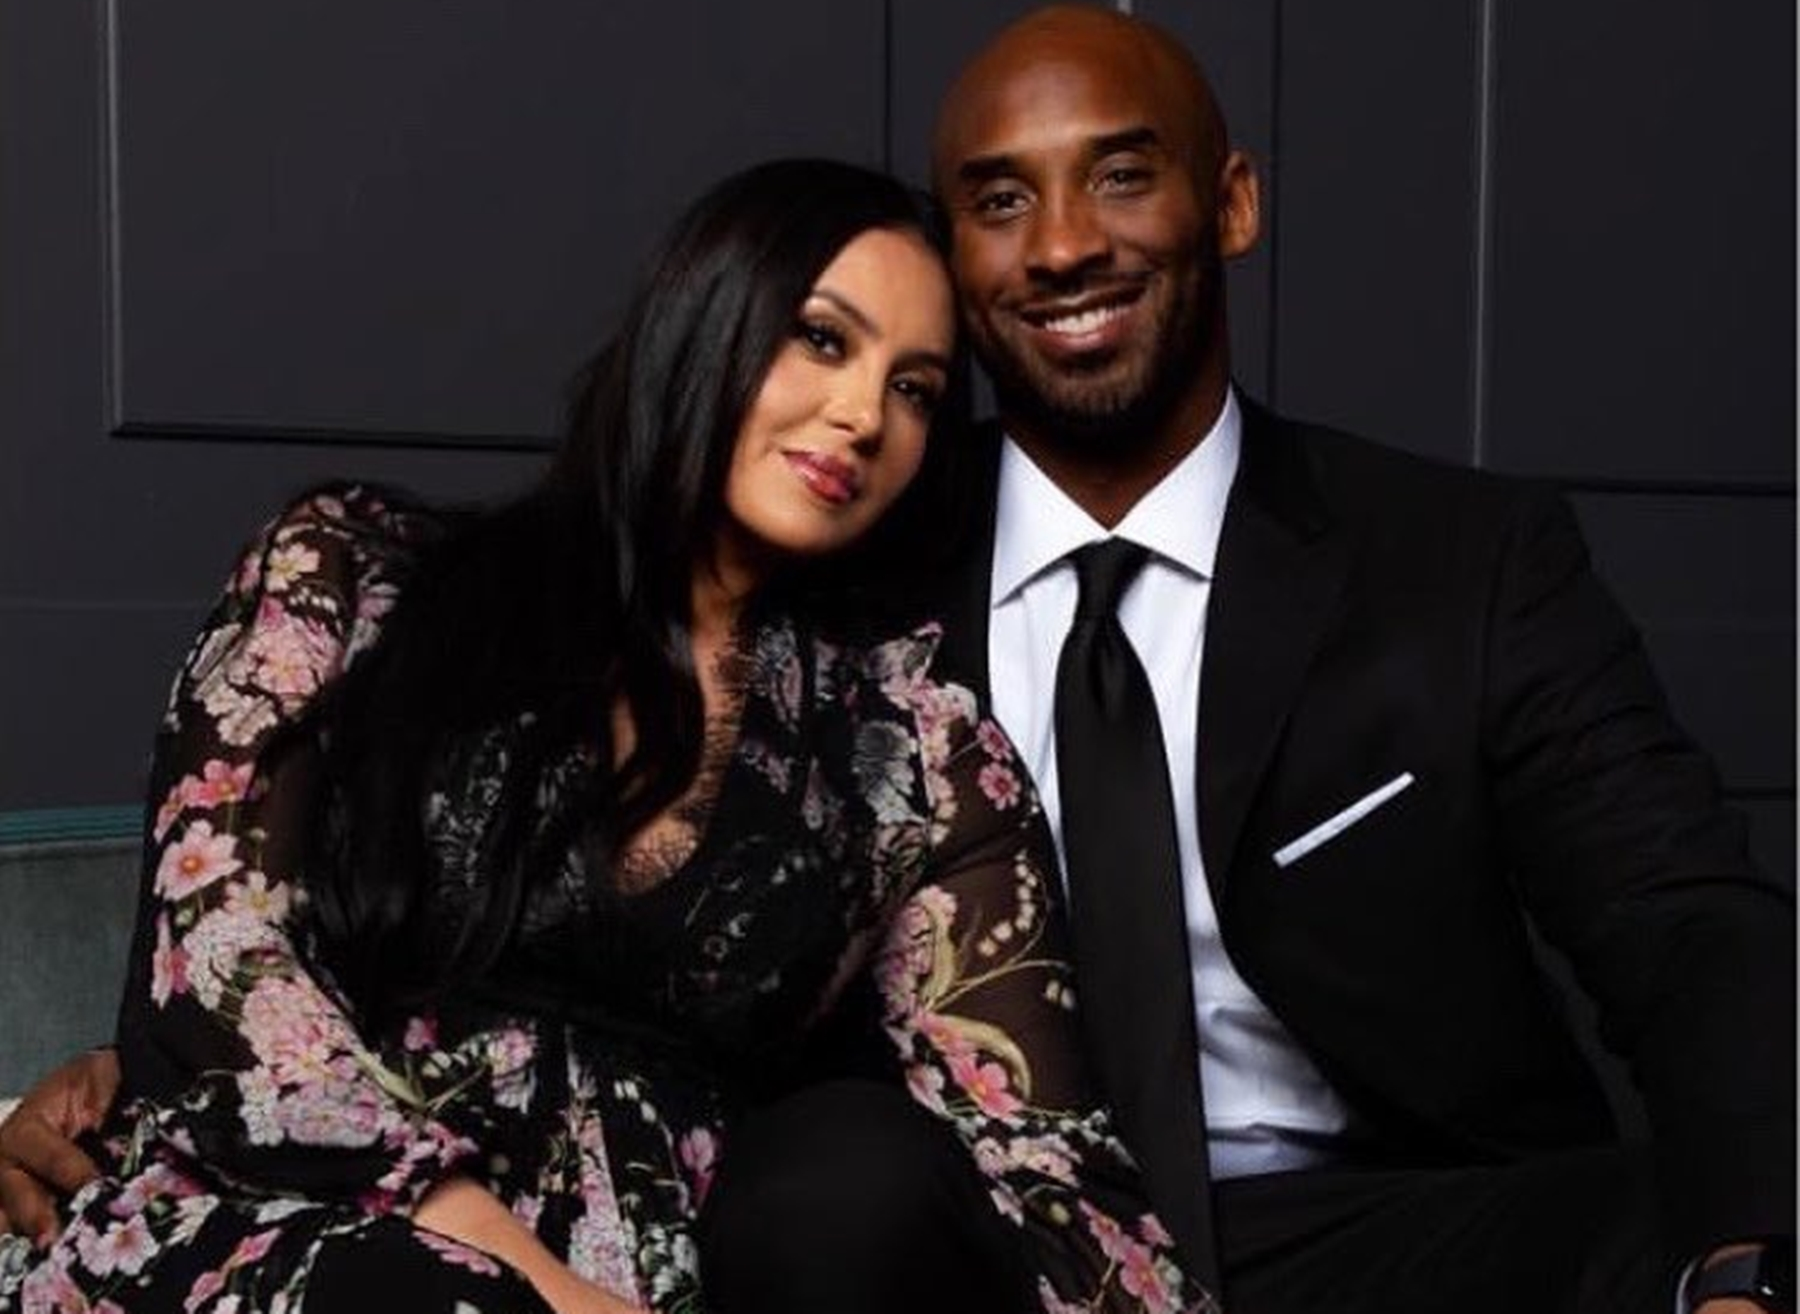 """kobe-bryant-shares-lovey-dovey-vacation-picture-with-his-stunning-wife-vanessa-bryant-the-nba-legend-calls-her-queen-here-is-what-fans-still-want-for-them"""